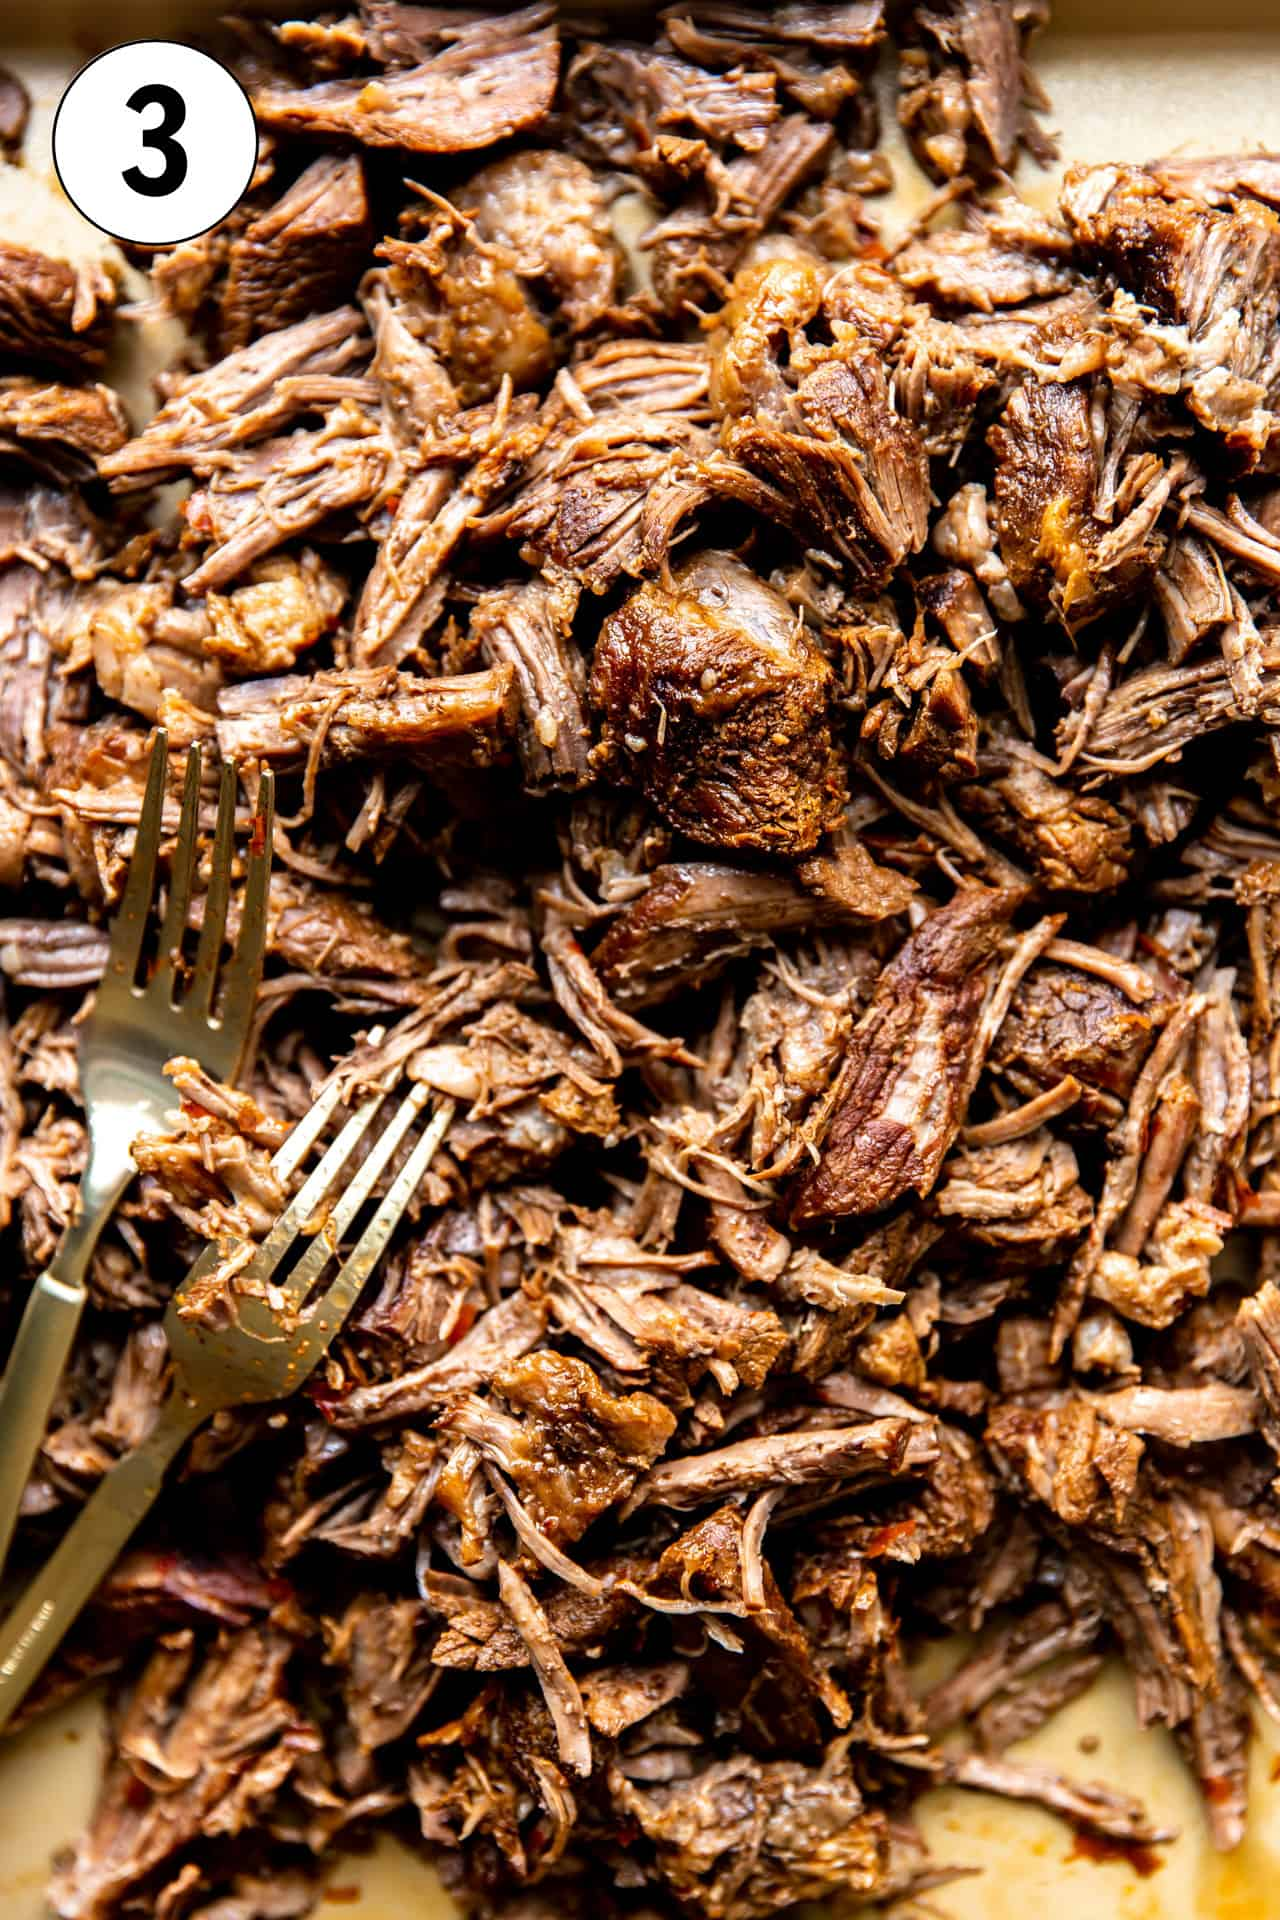 Chopped up beef from homemade birria.